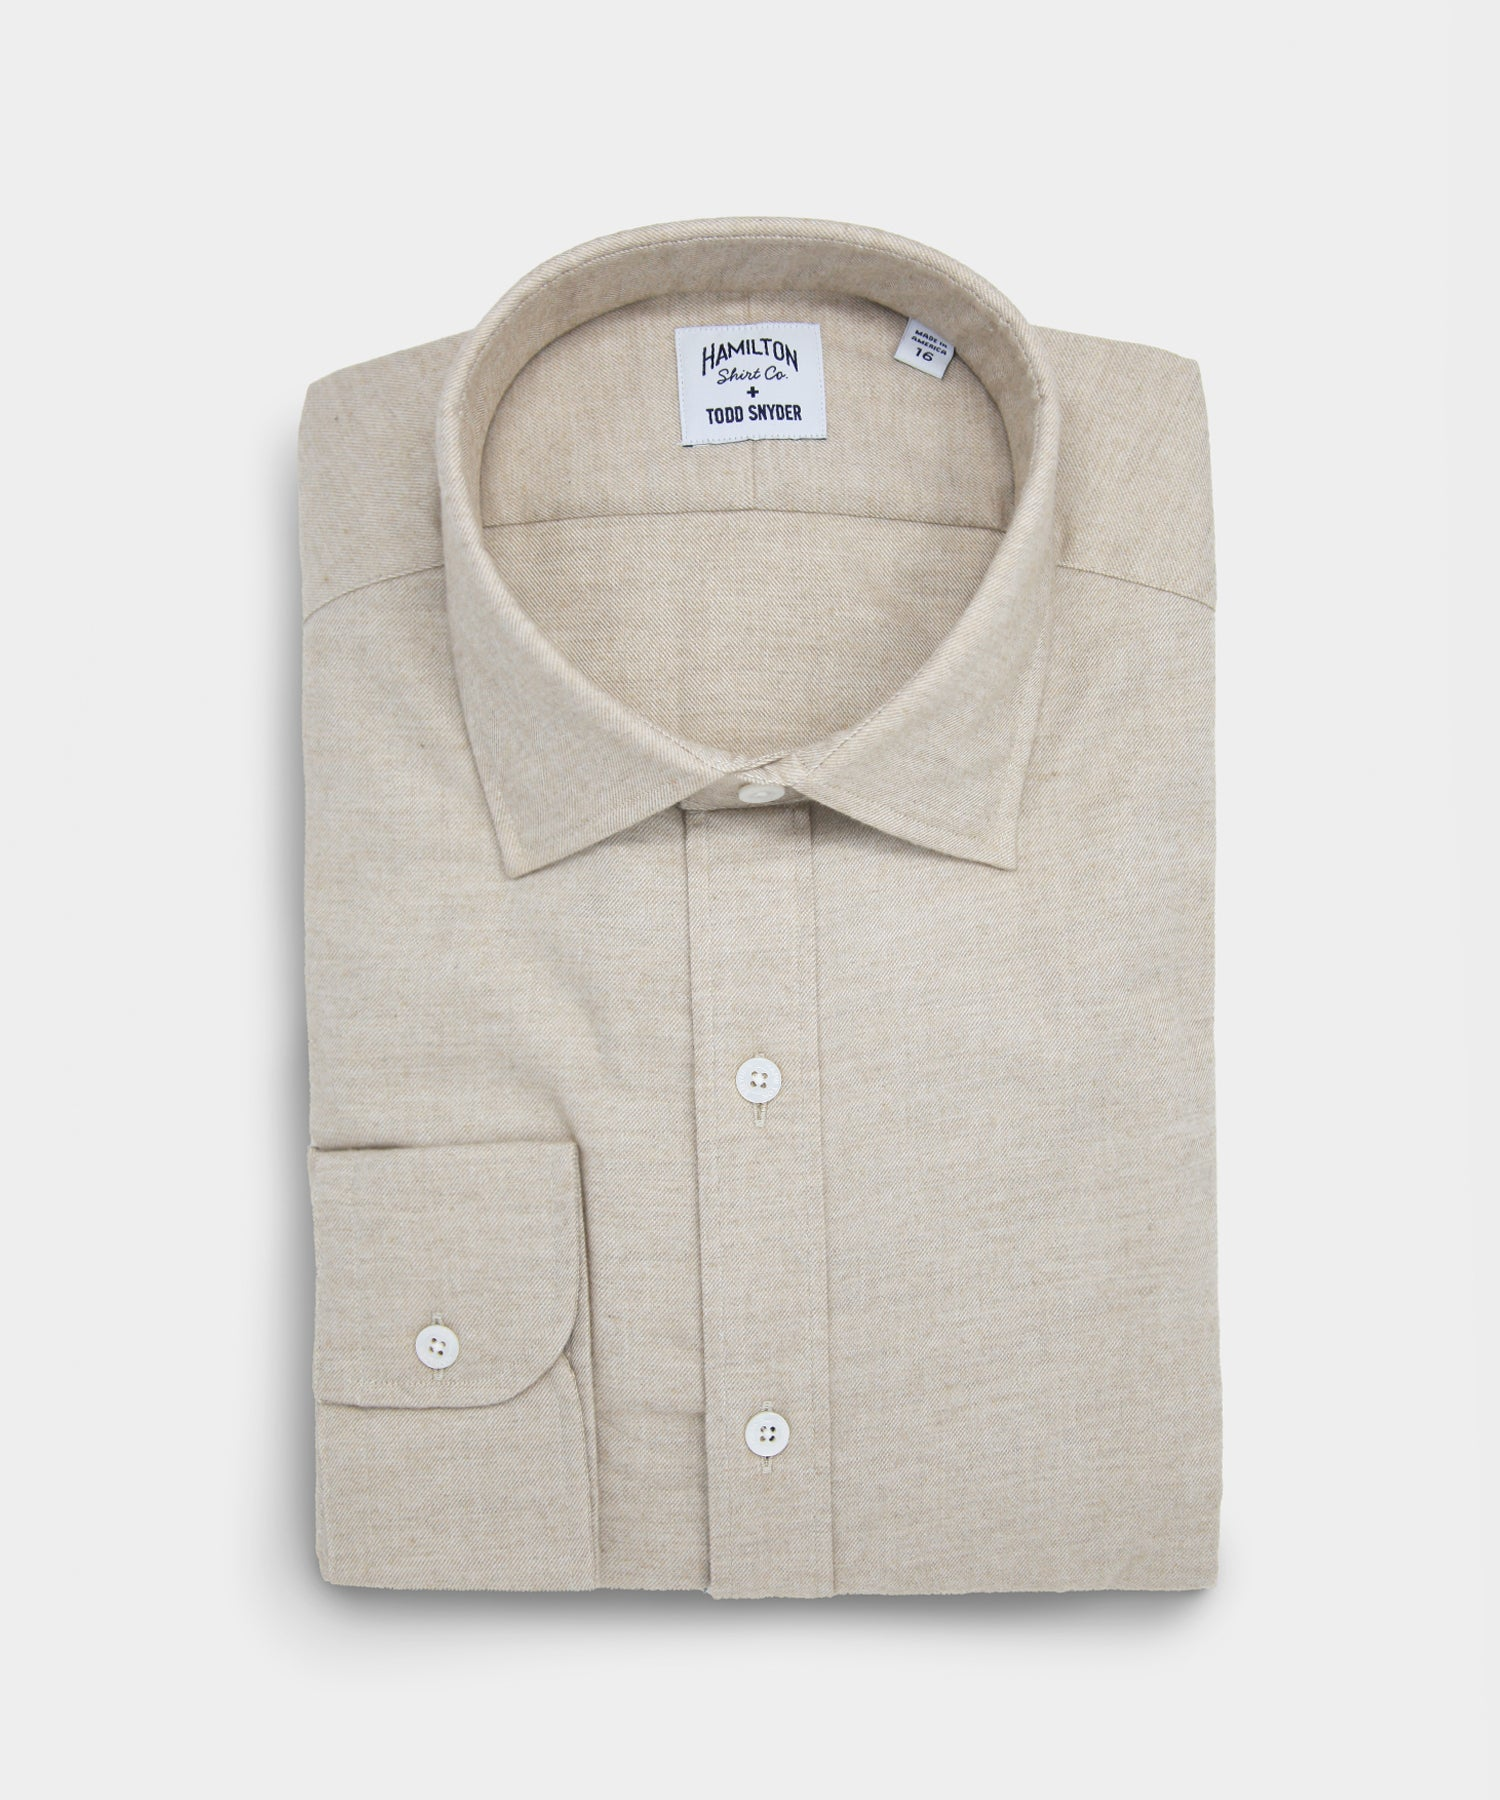 Made in the USA Hamilton + Todd Snyder Solid Beige Dress Shirt